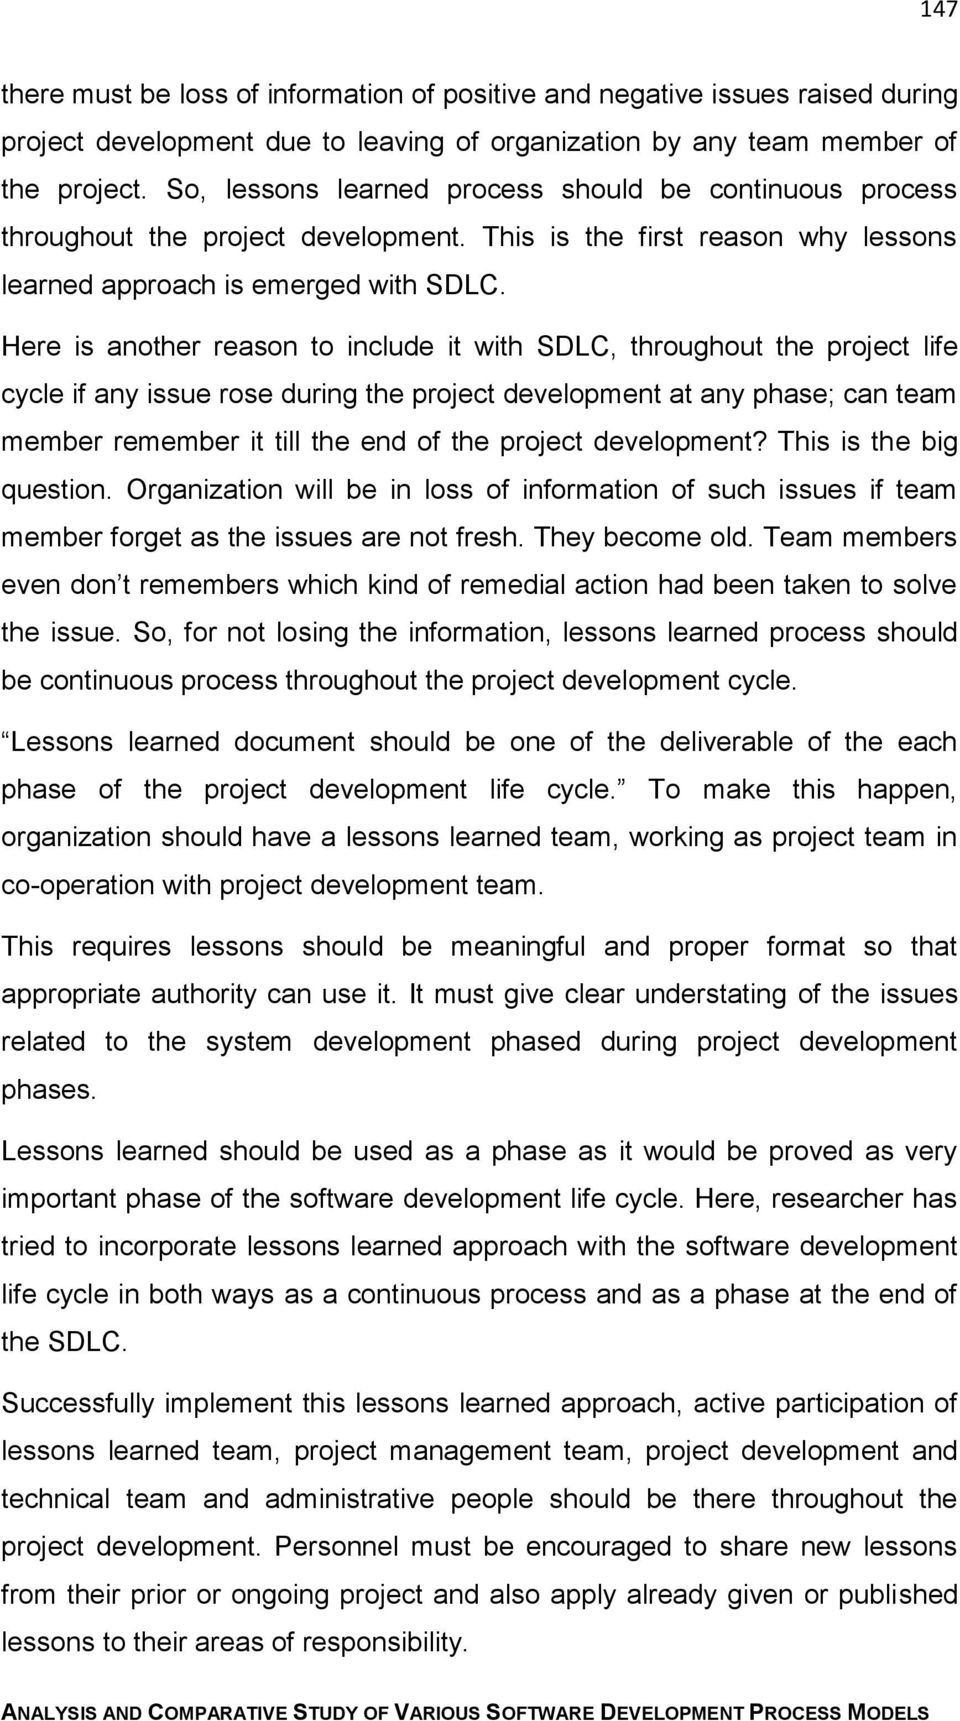 4  Incorporate Lessons Learned with SDLC - PDF